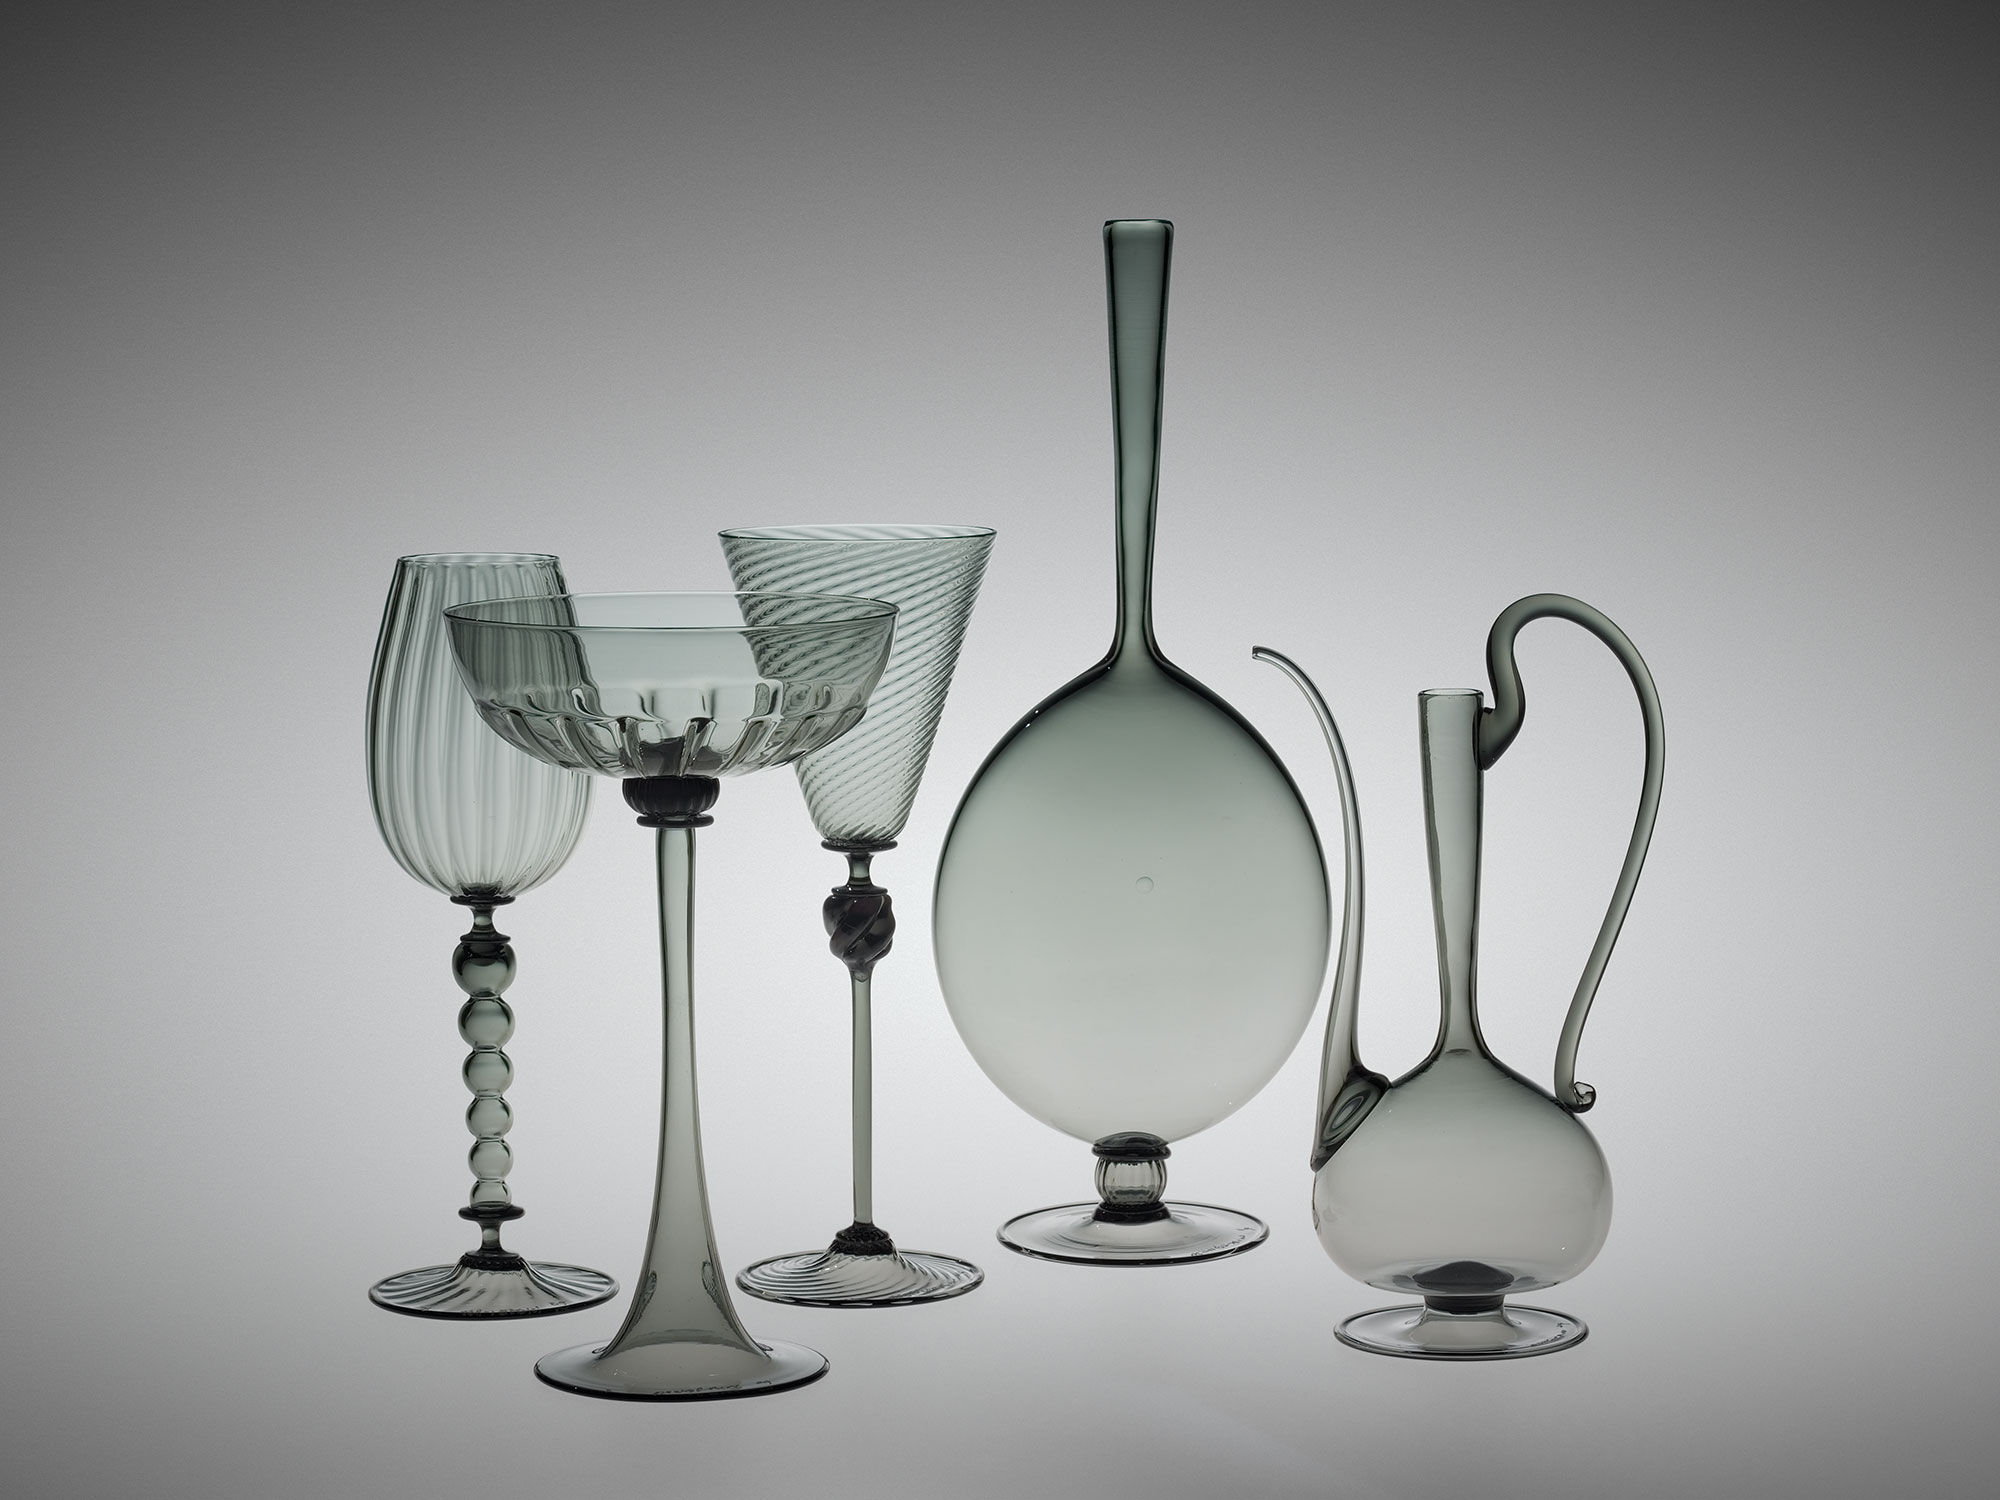 Three clear glass goblets, a clear glass vase, and a clear glass tankard